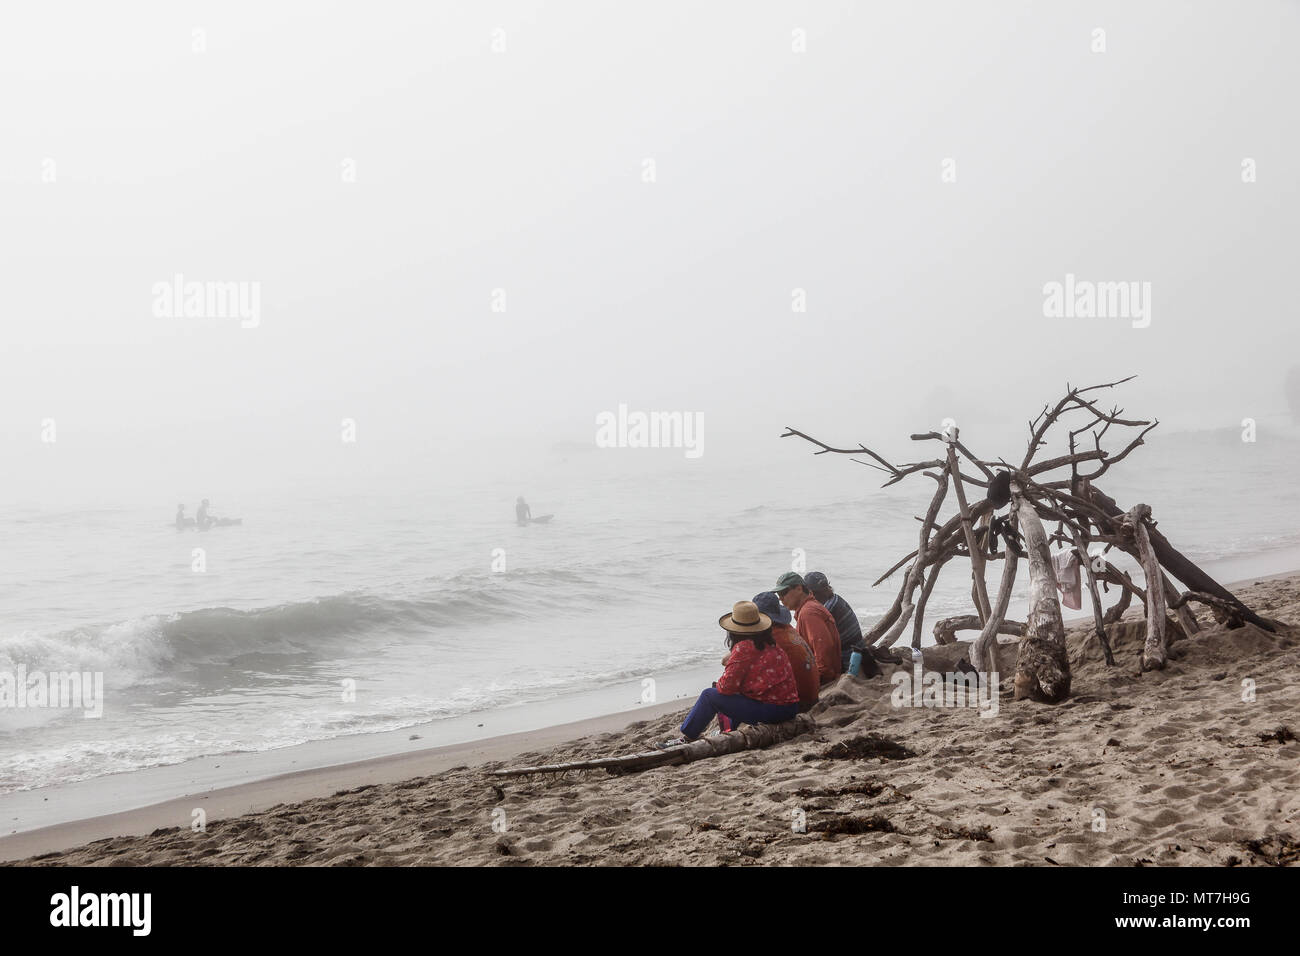 Family of four sitting by the ocean, California. - Stock Image